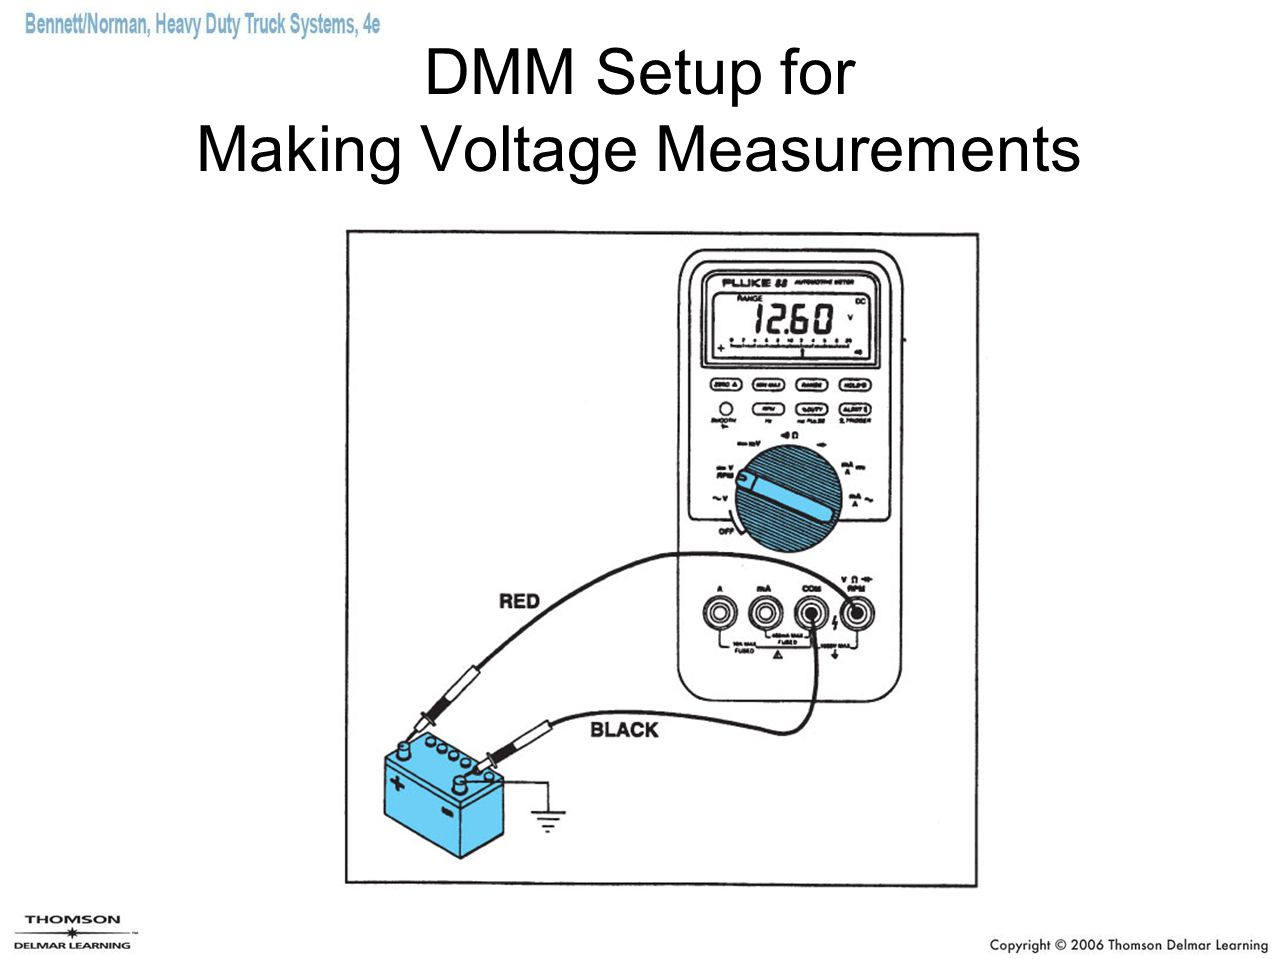 DMM Setup for Making Voltage Measurements